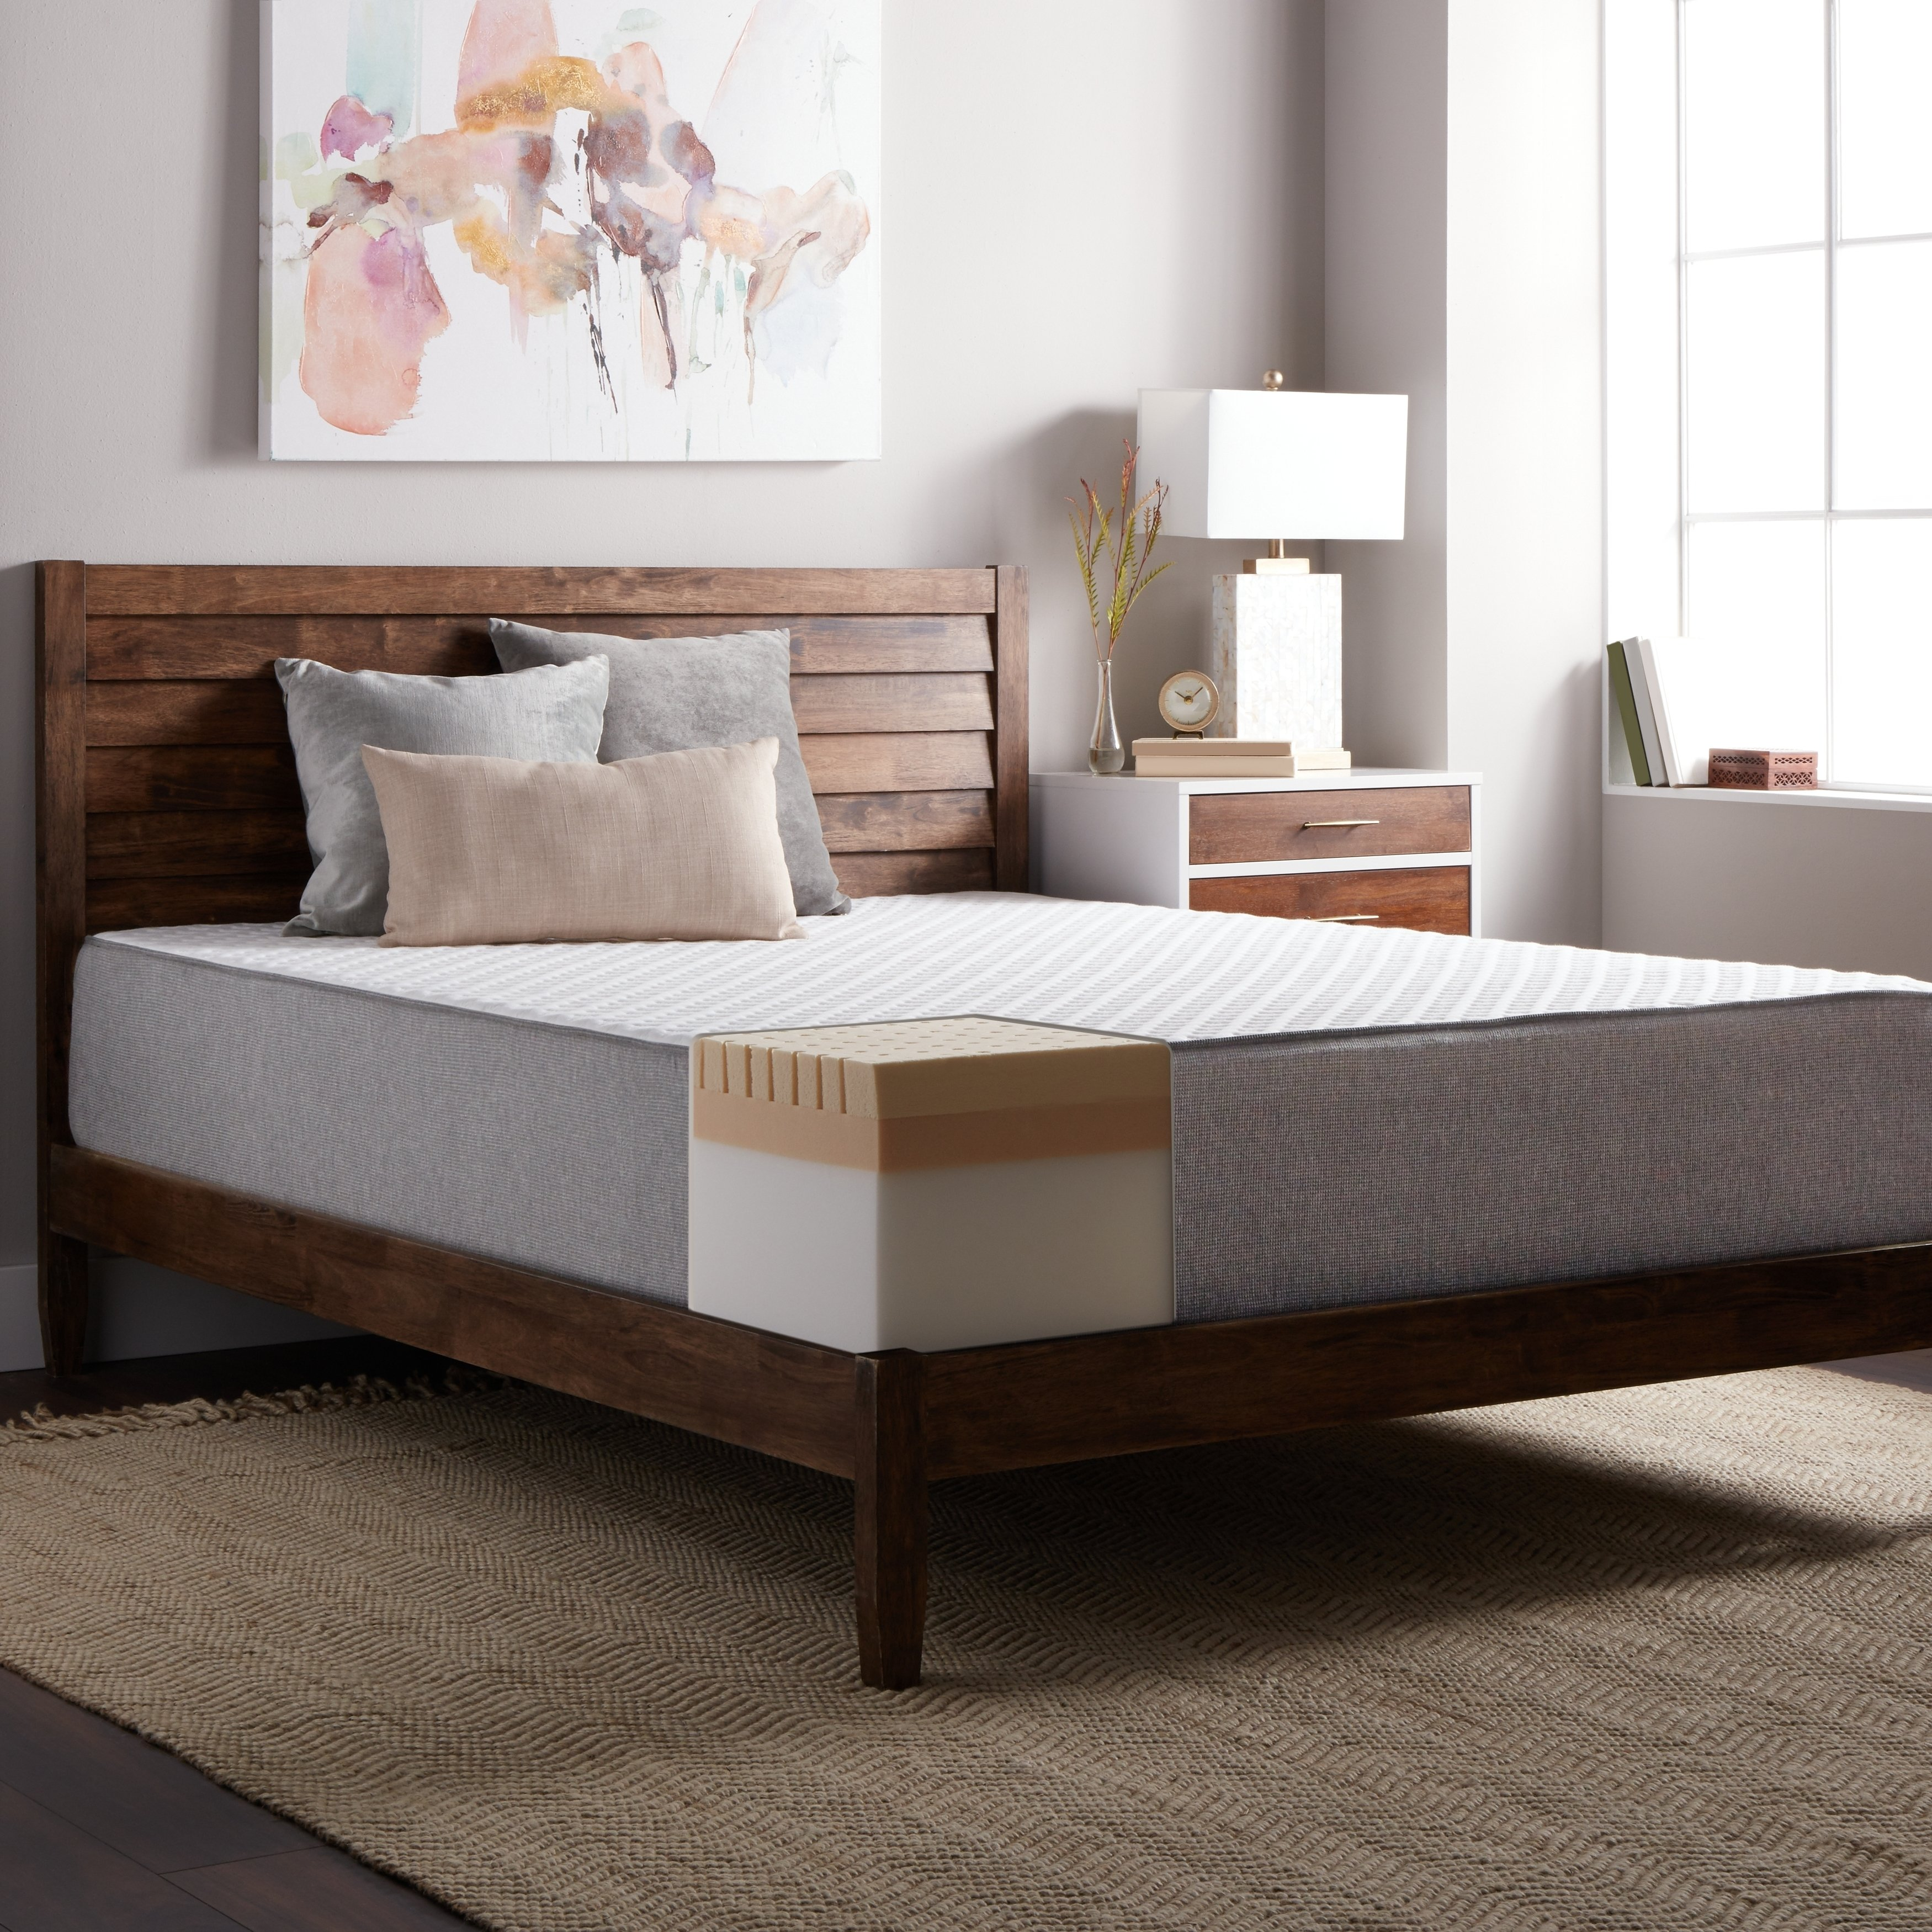 Select Luxury  E.C.O. 12-inch Latex and Memory Foam Mattress